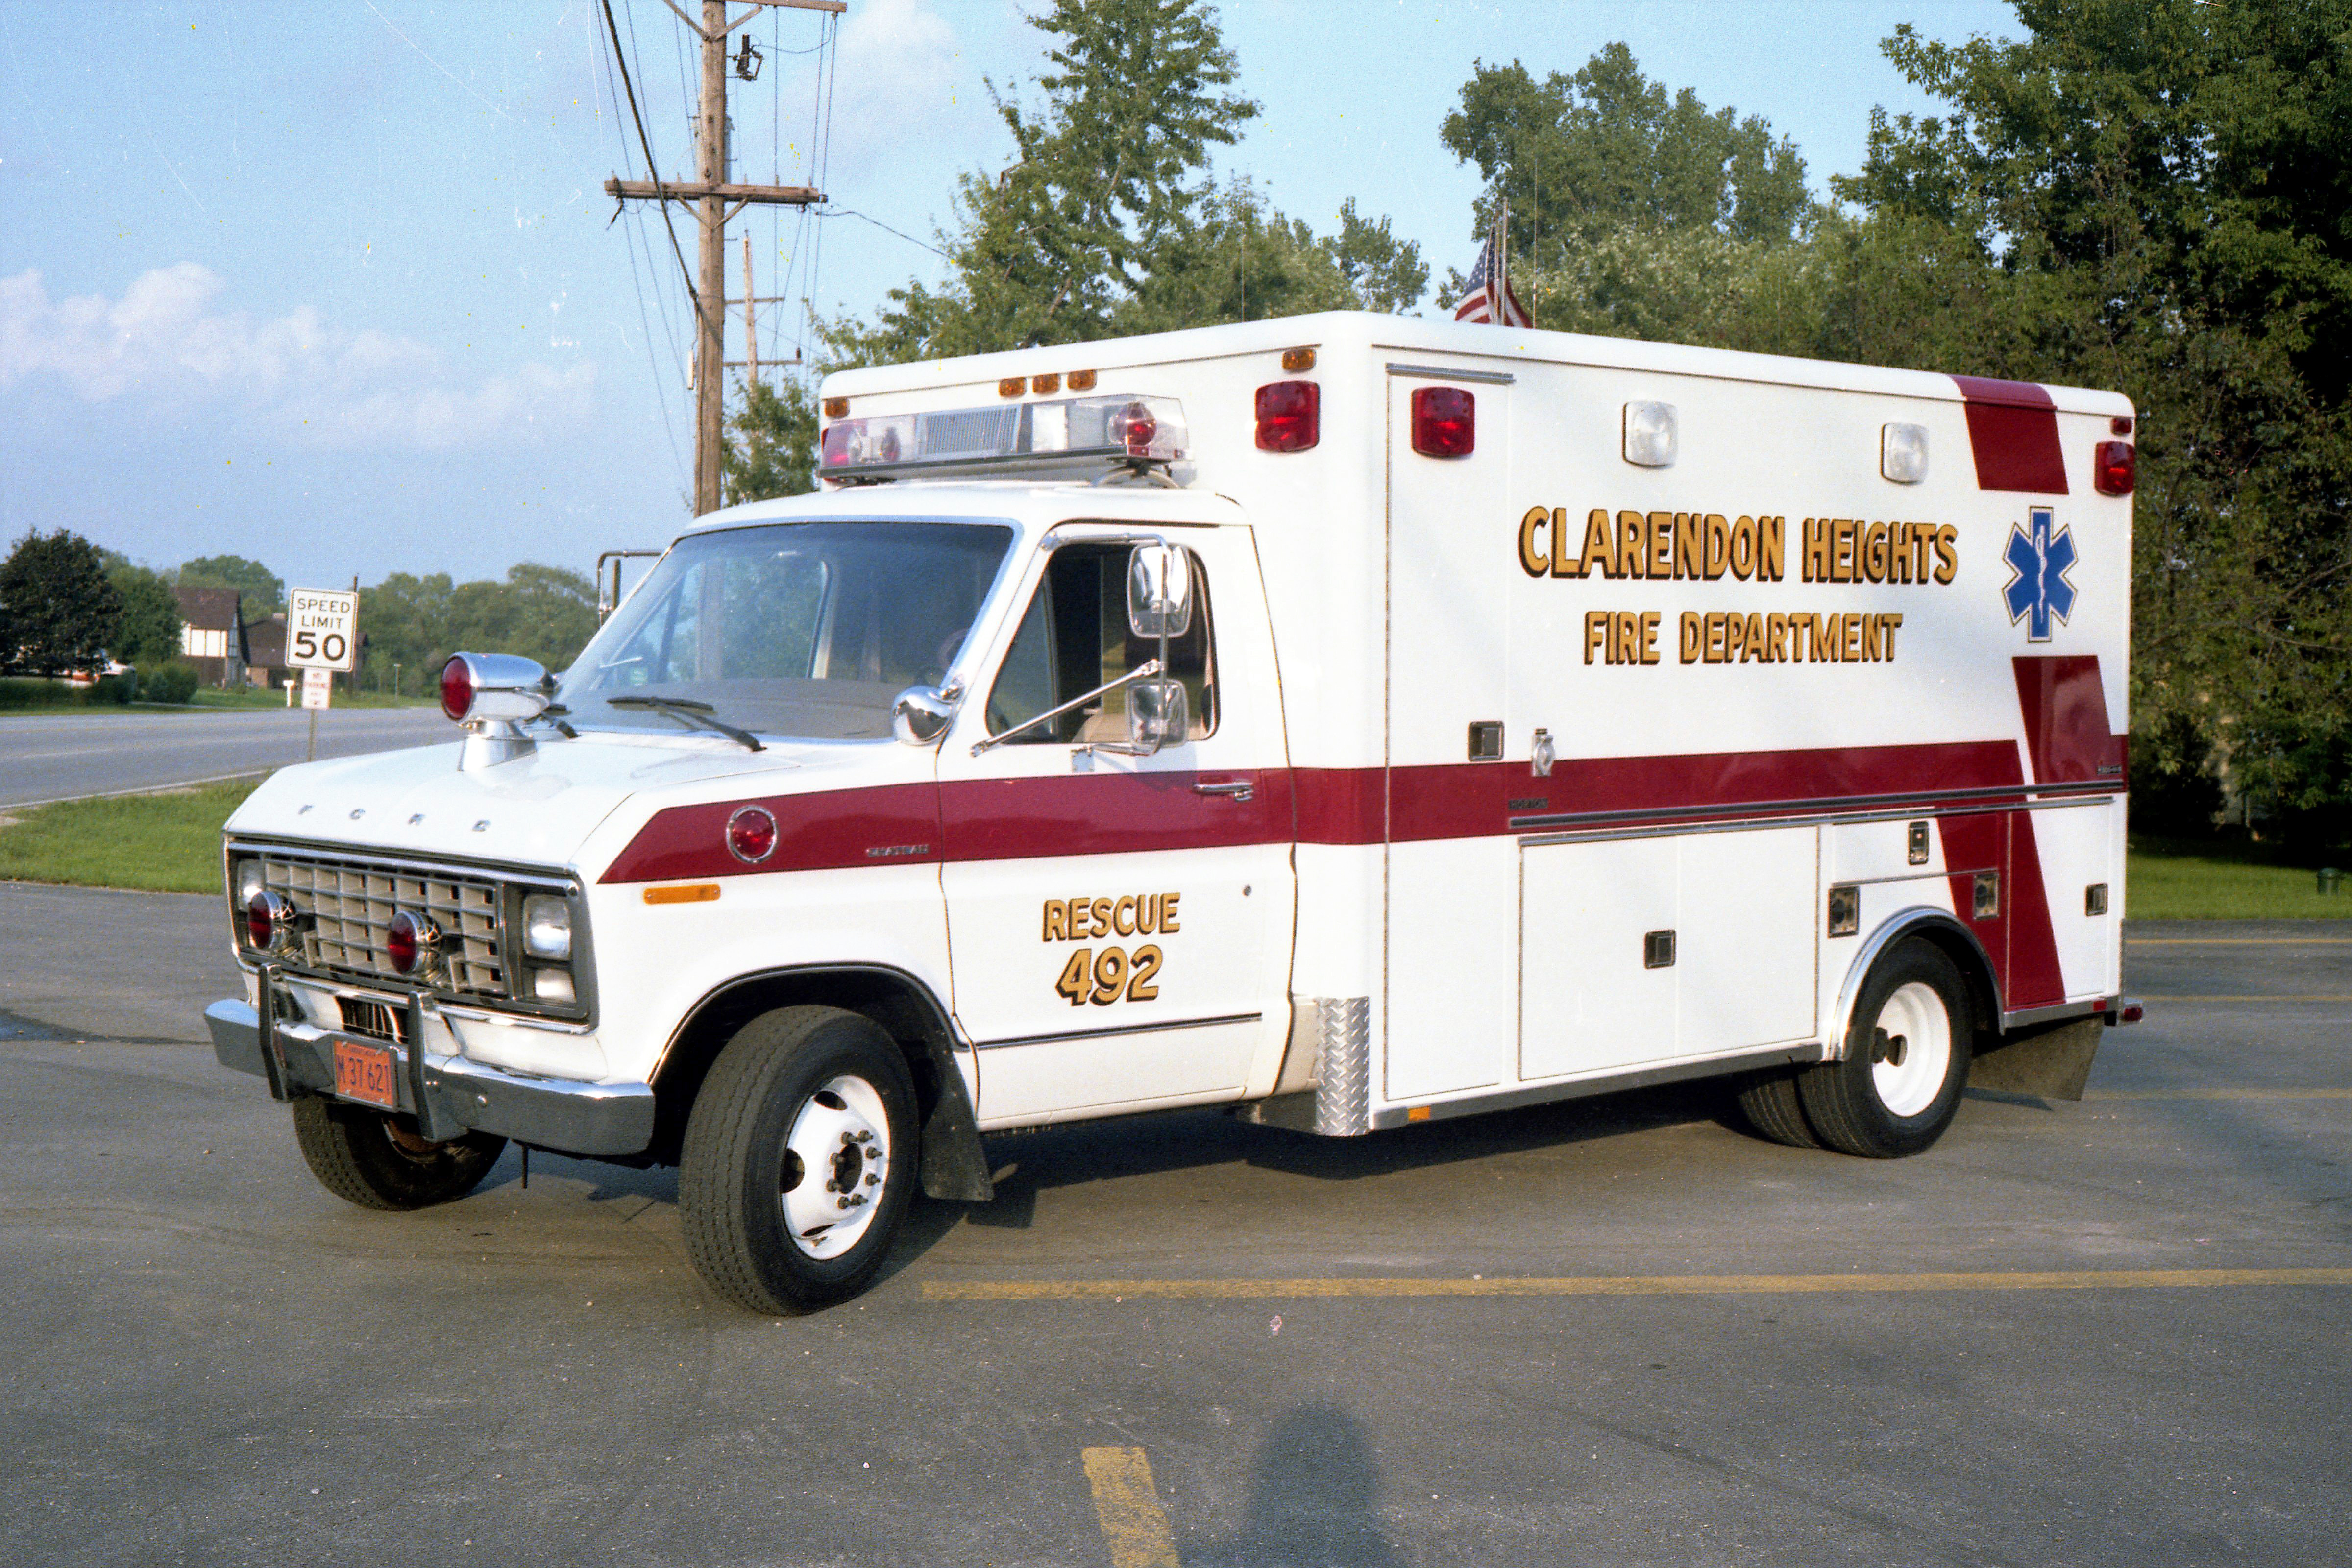 CLARENDON HEIGHTS AMBULANCE 492 1981 FORD E350 - HORTON